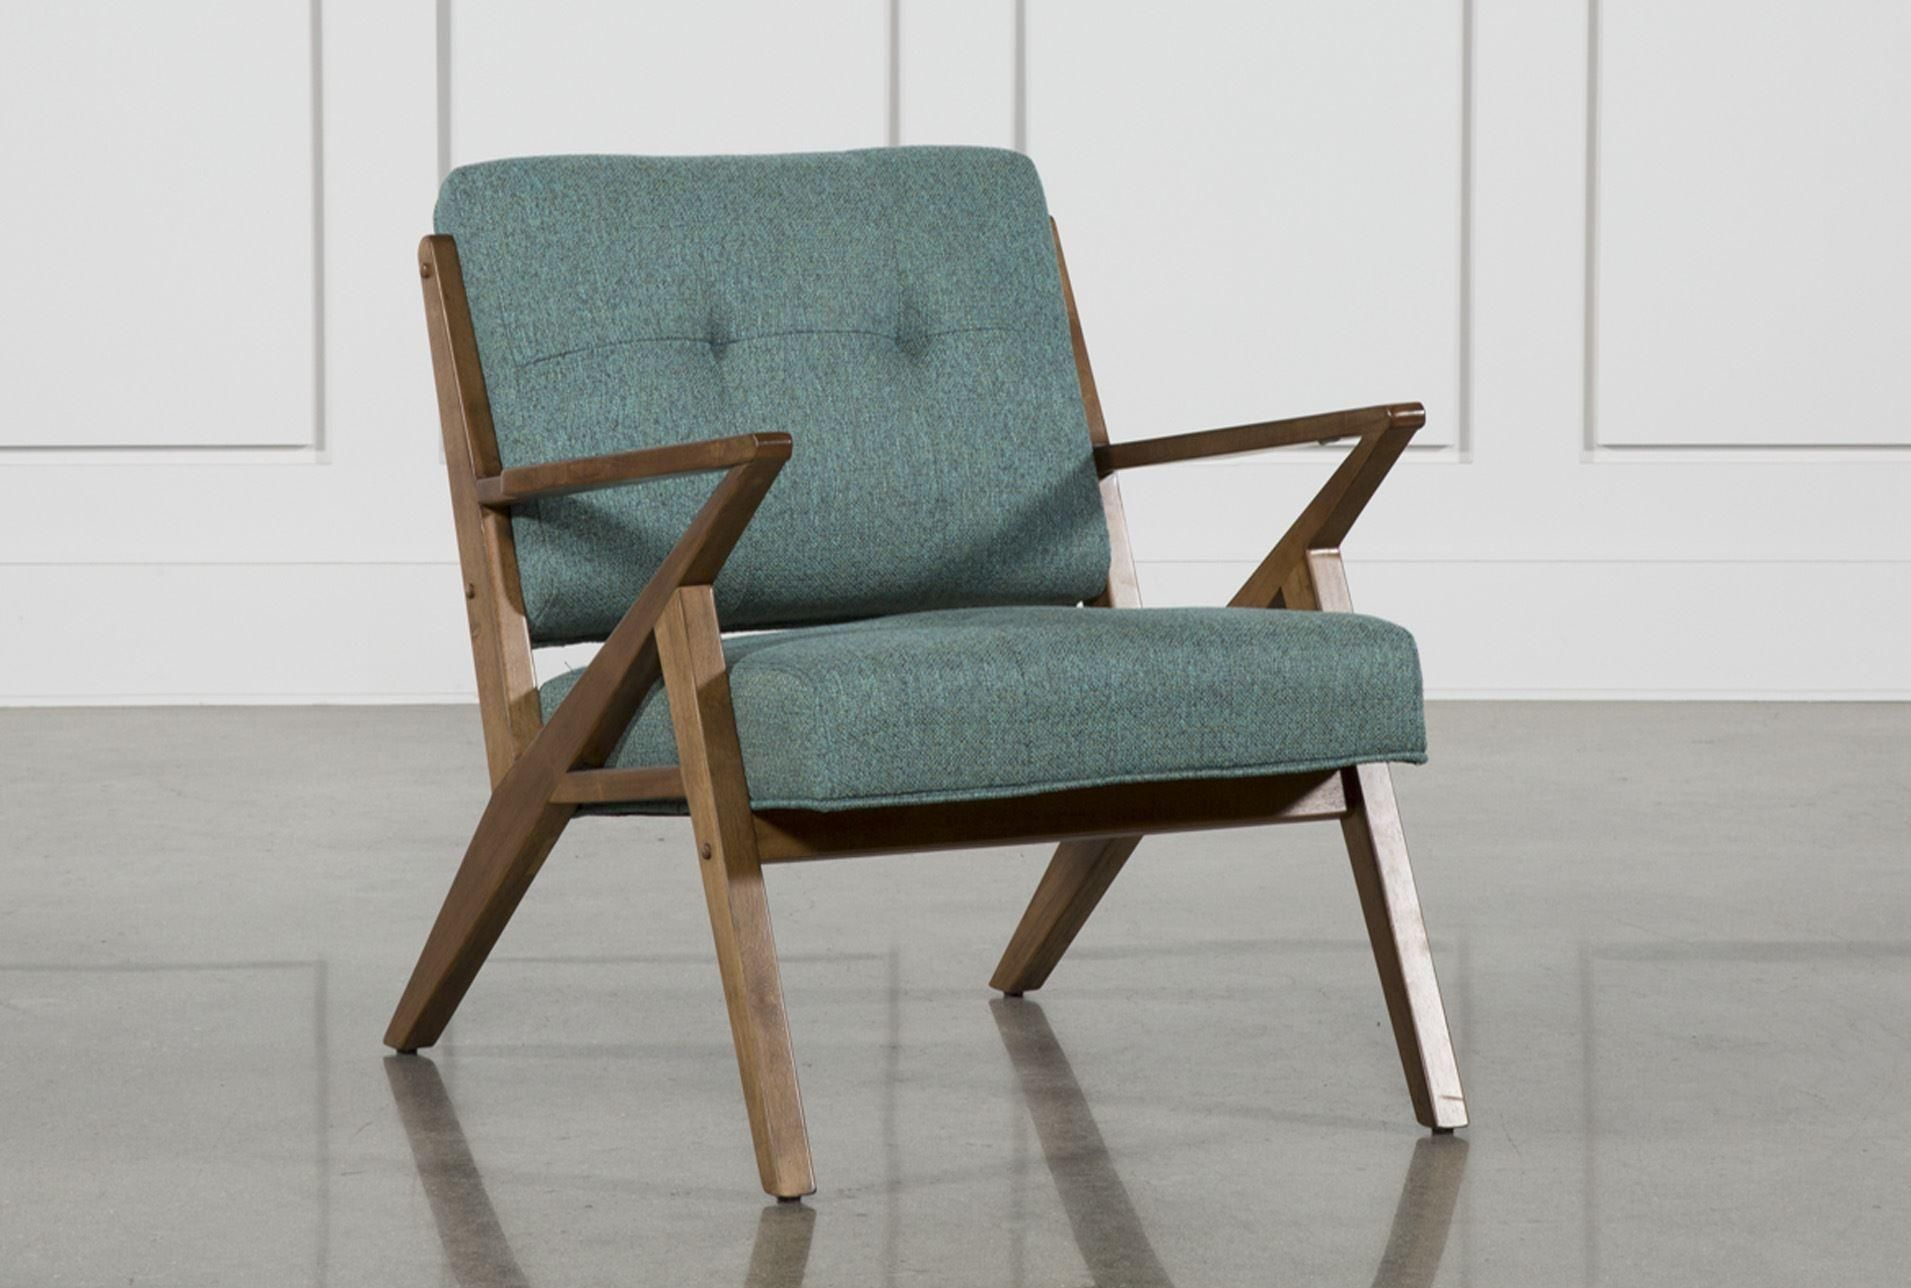 teal accent chair wheelchair that goes up stairs aldo rmg office design 2018 chairs